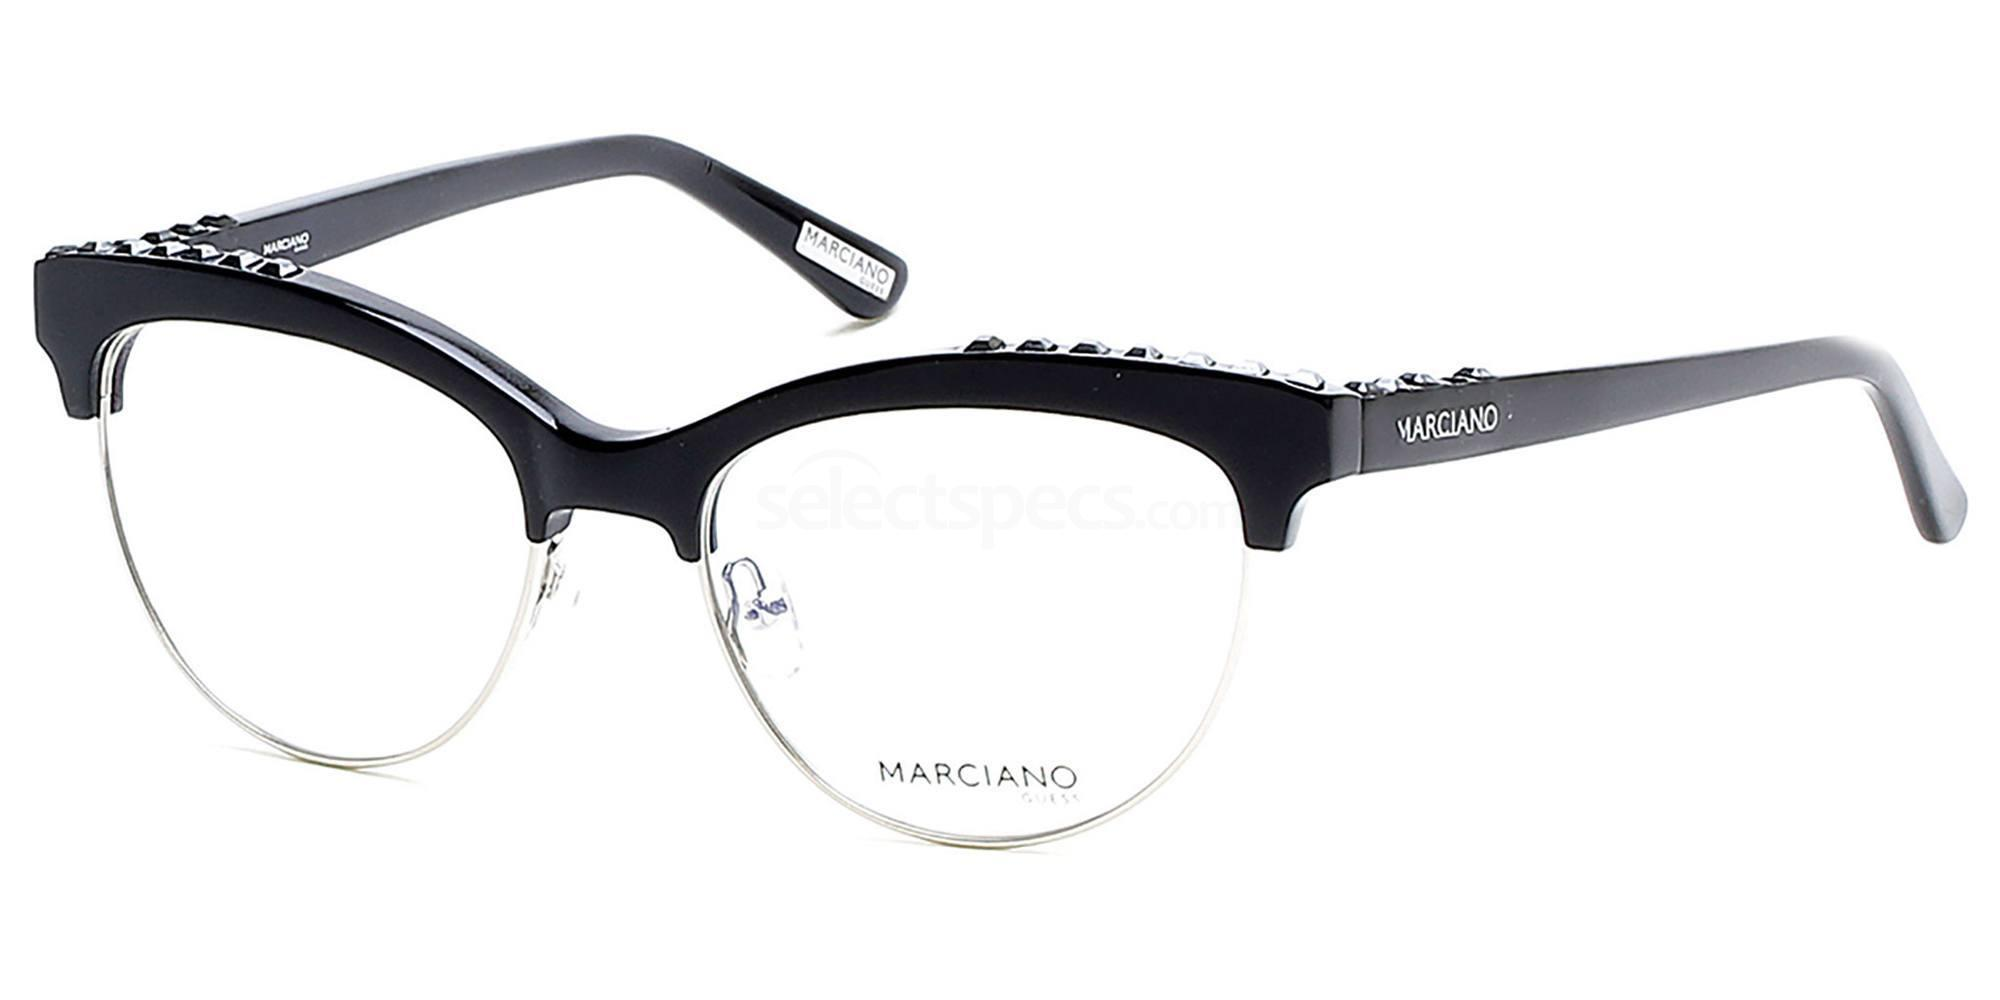 001 GM0284 Glasses, Guess by Marciano